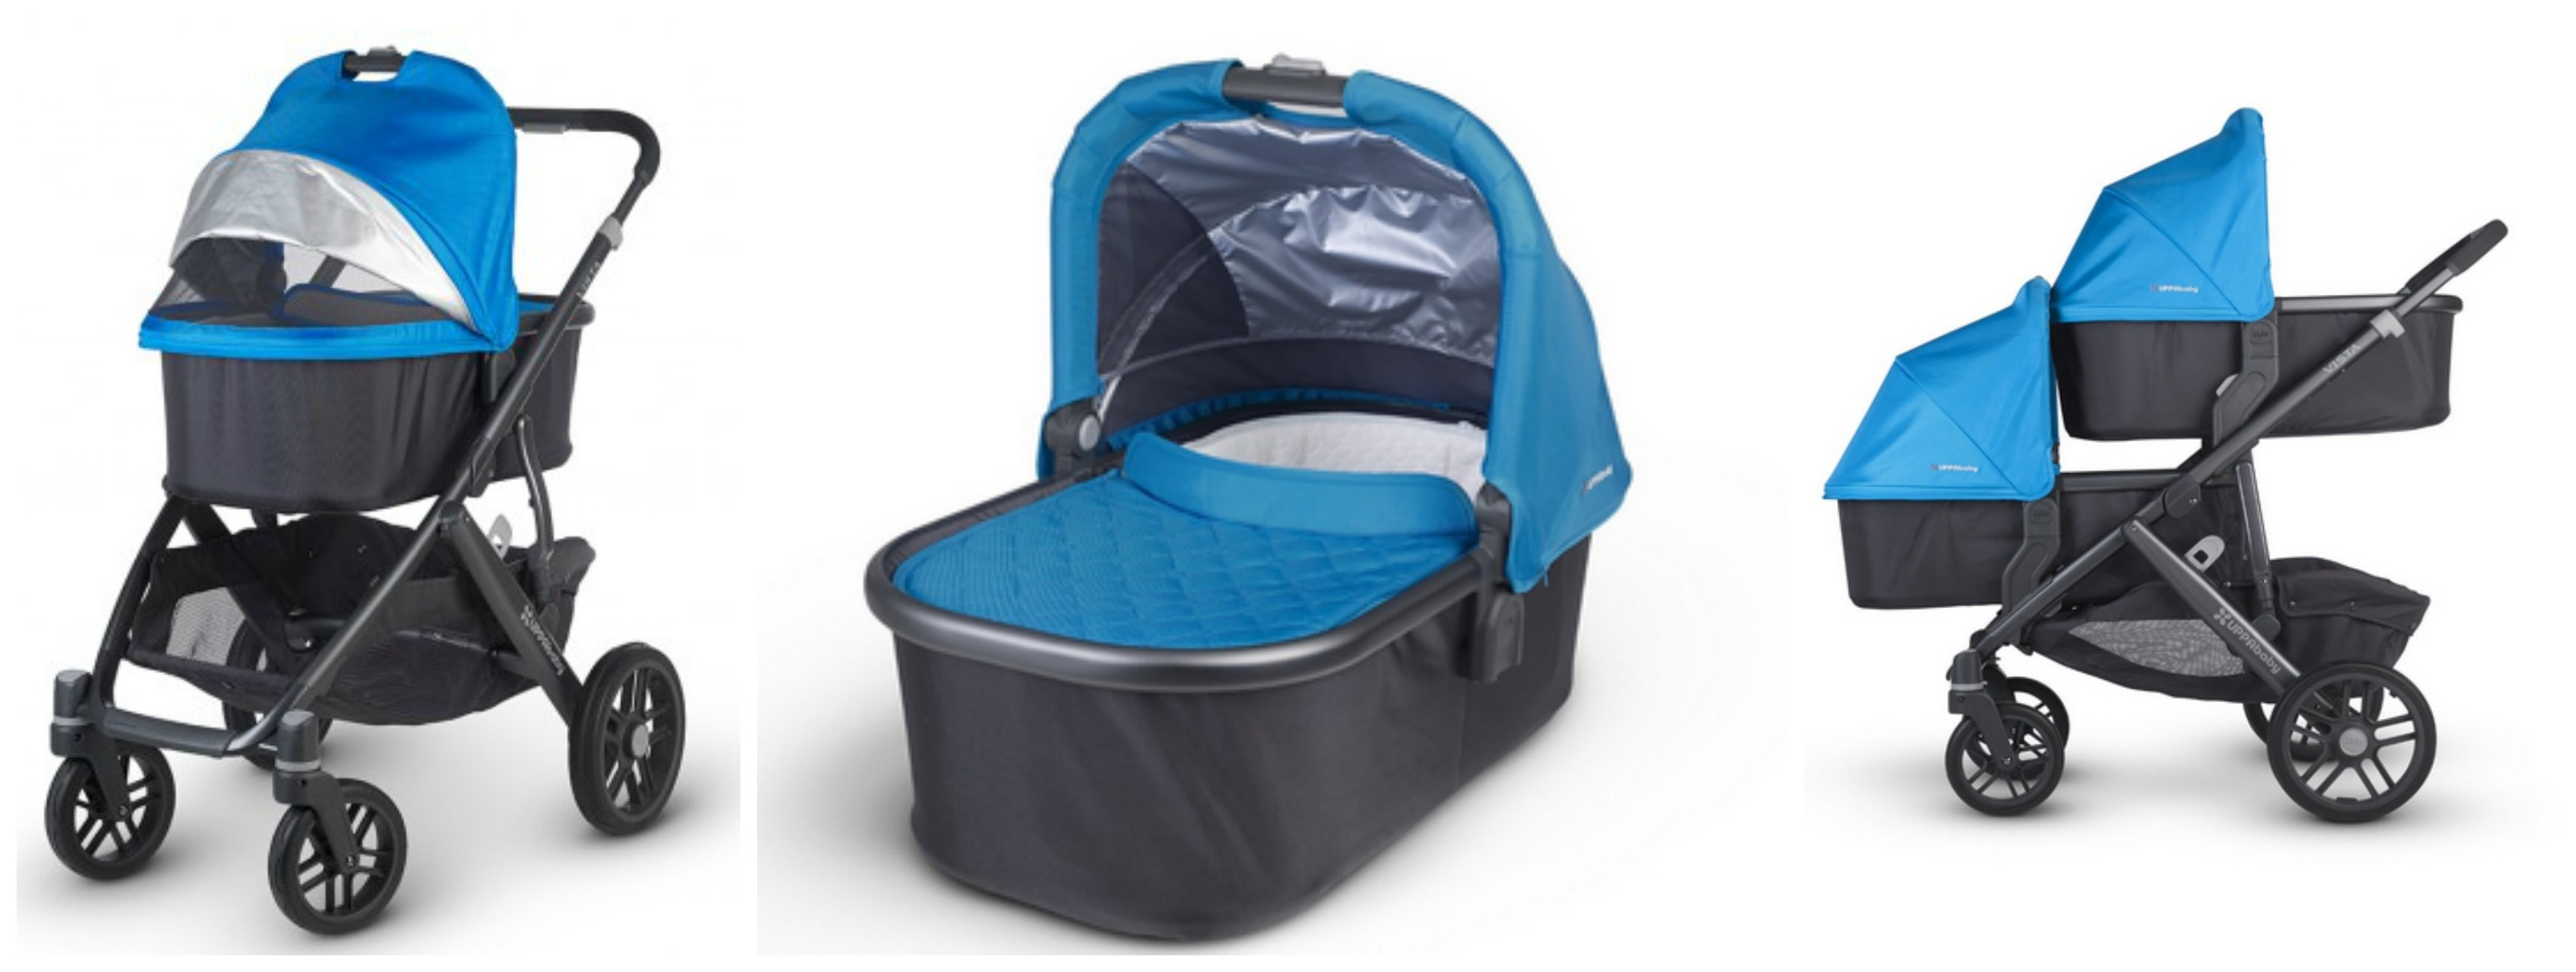 Baby Bassinet Liner New Year New Gear Presenting The 2015 Uppababy Vista